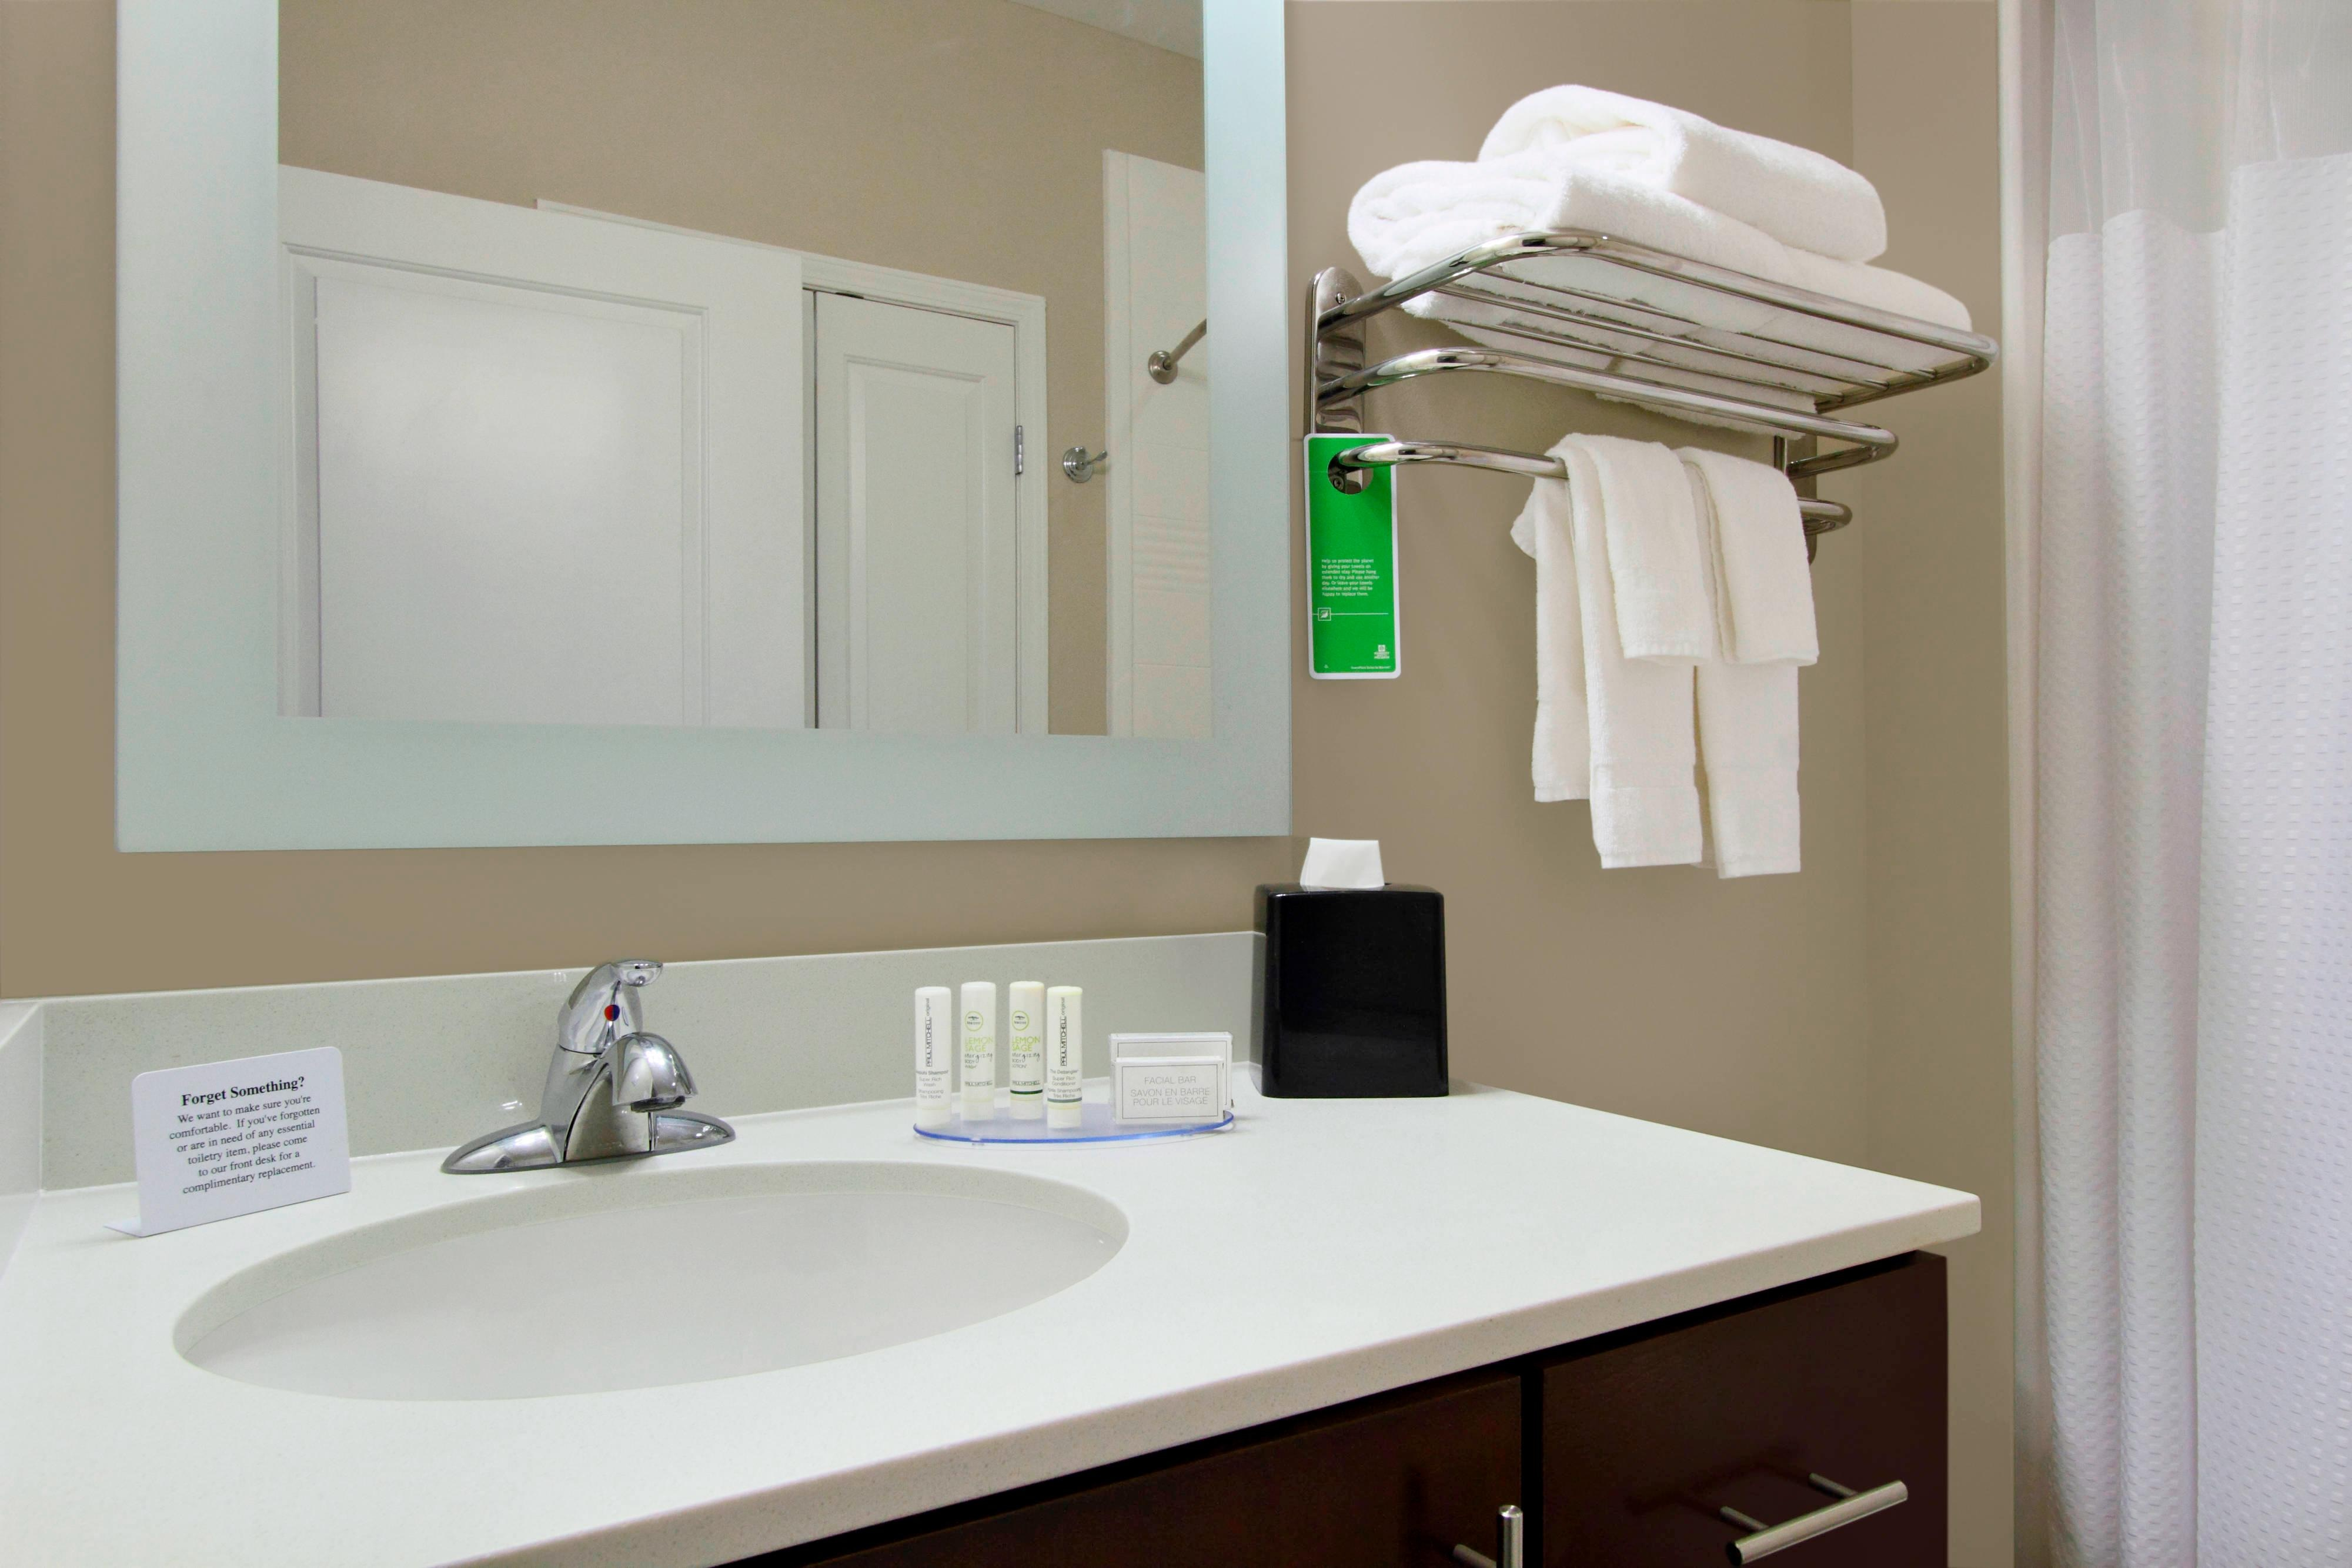 Msyhv Towneplace Suites New Orleans Harvey West Bank on Towneplace Suites Room Floor Plans